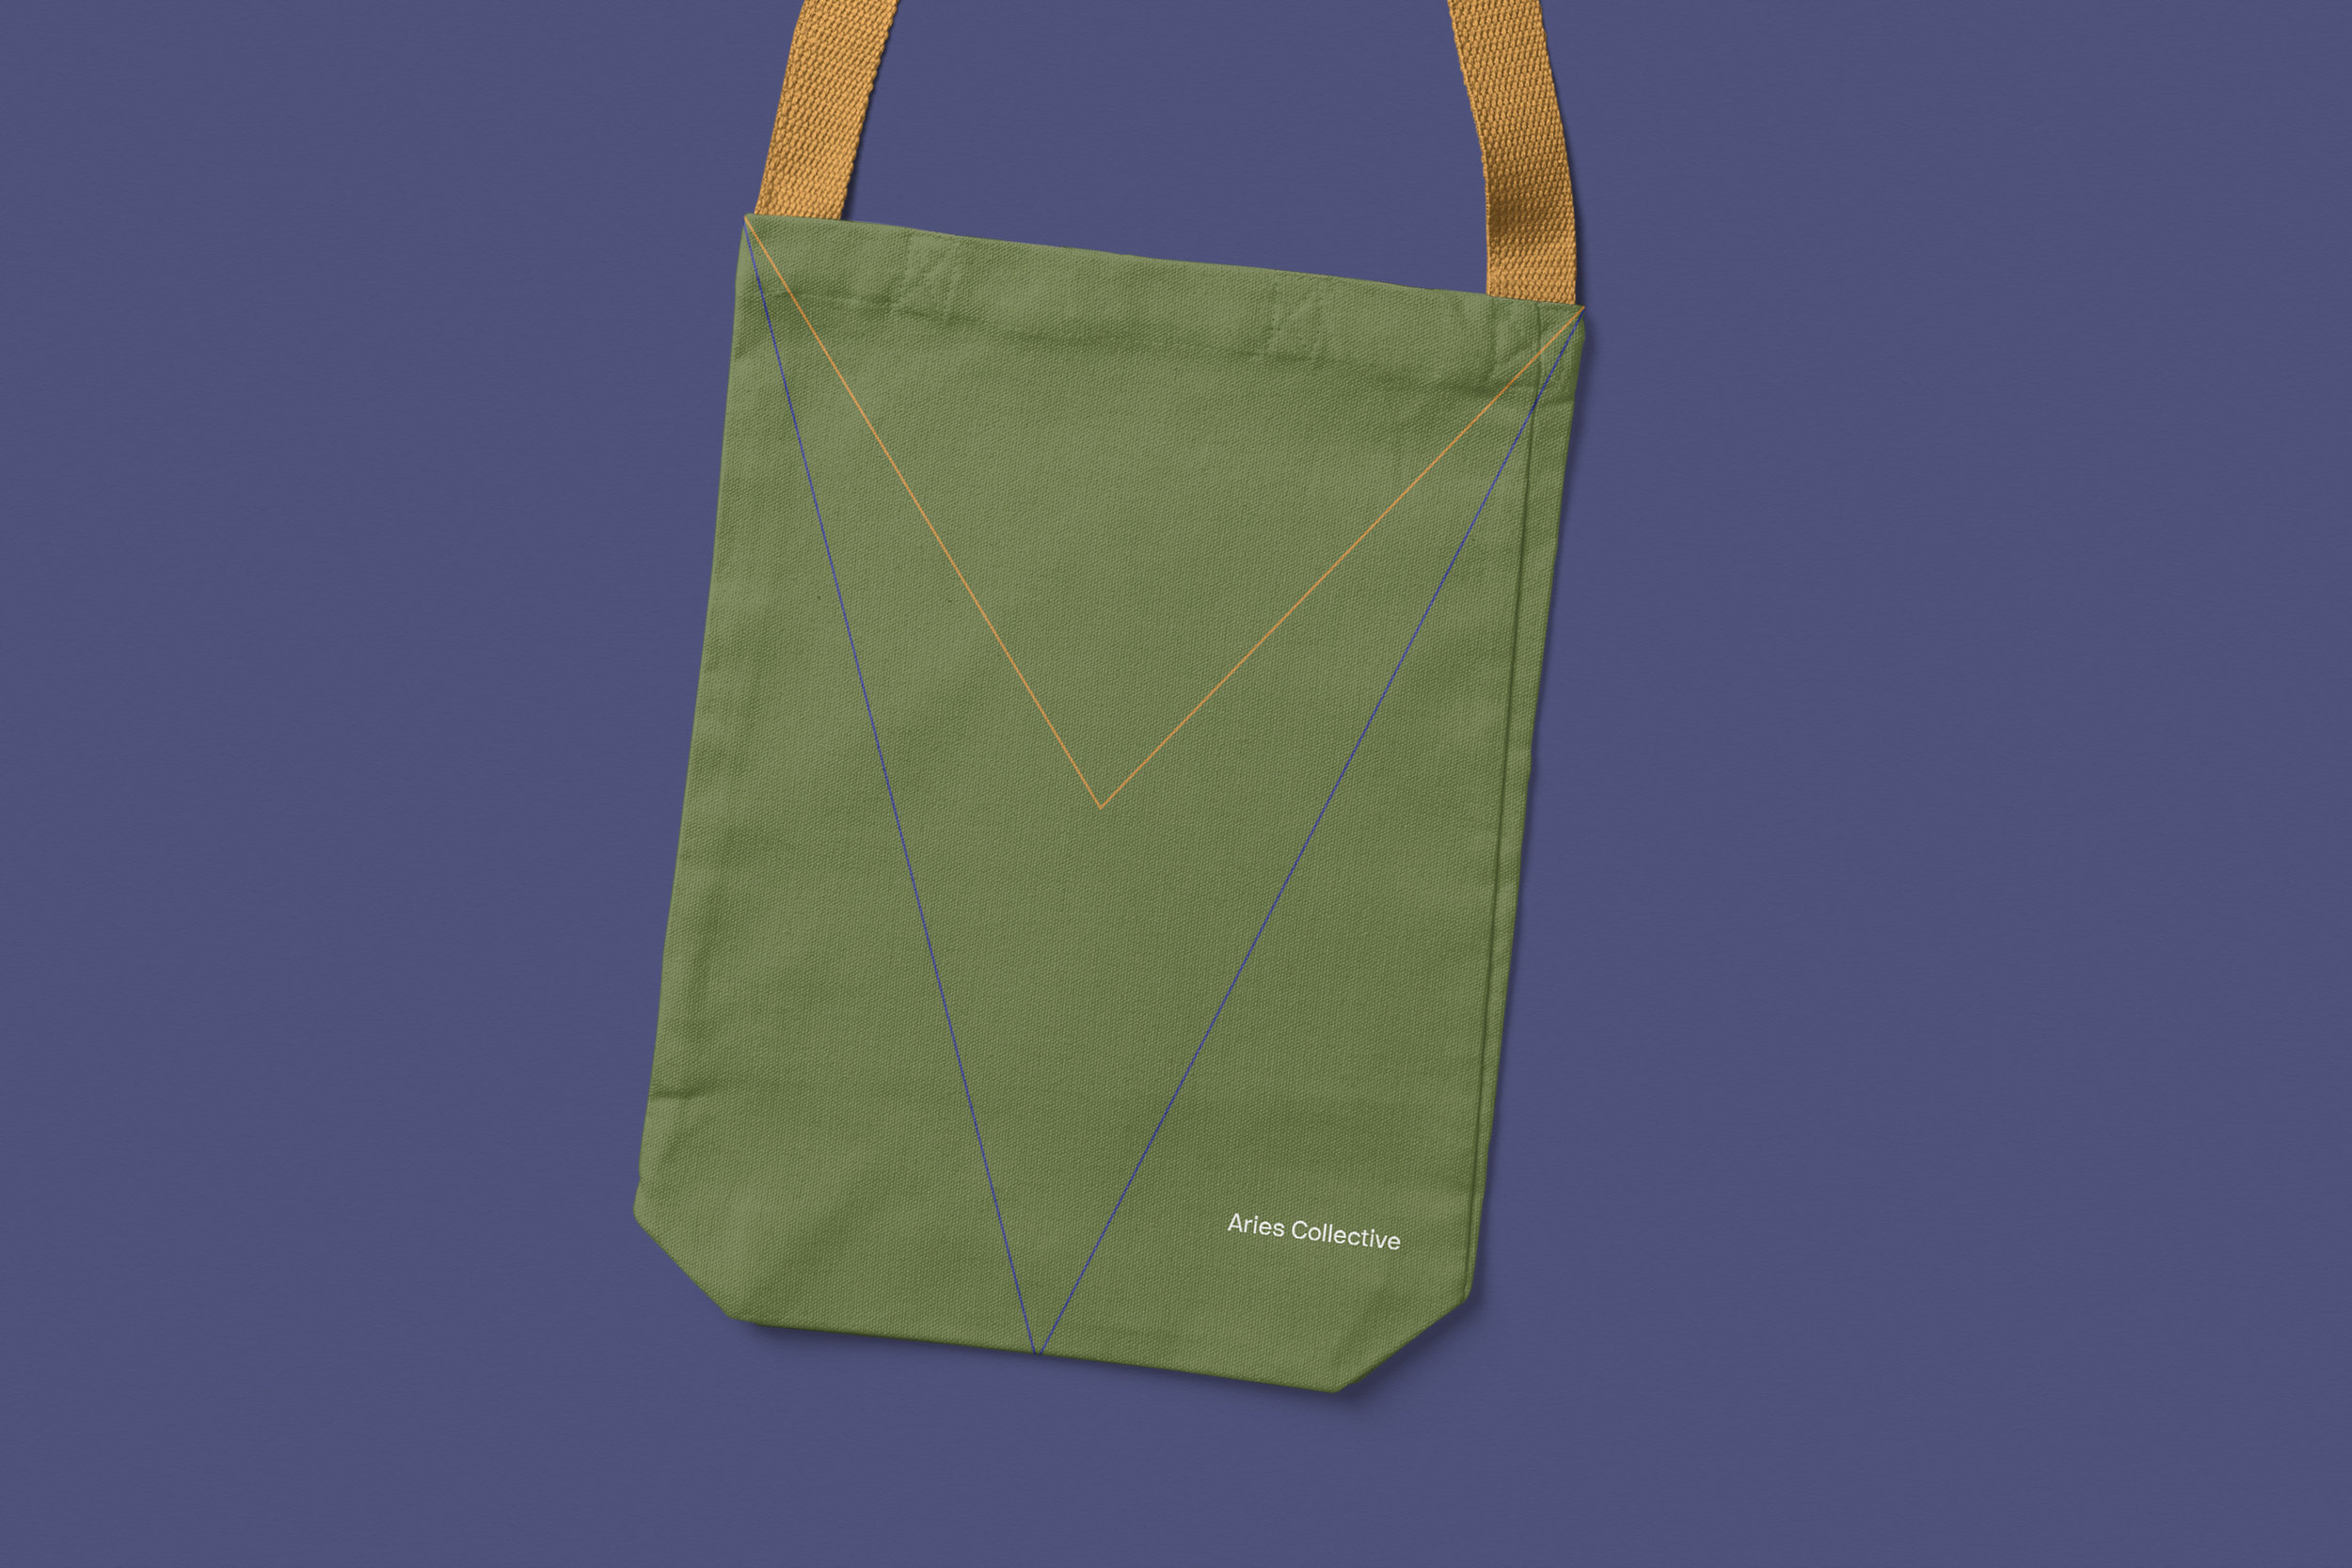 Aries_Collective_Tote_V2EA.jpg